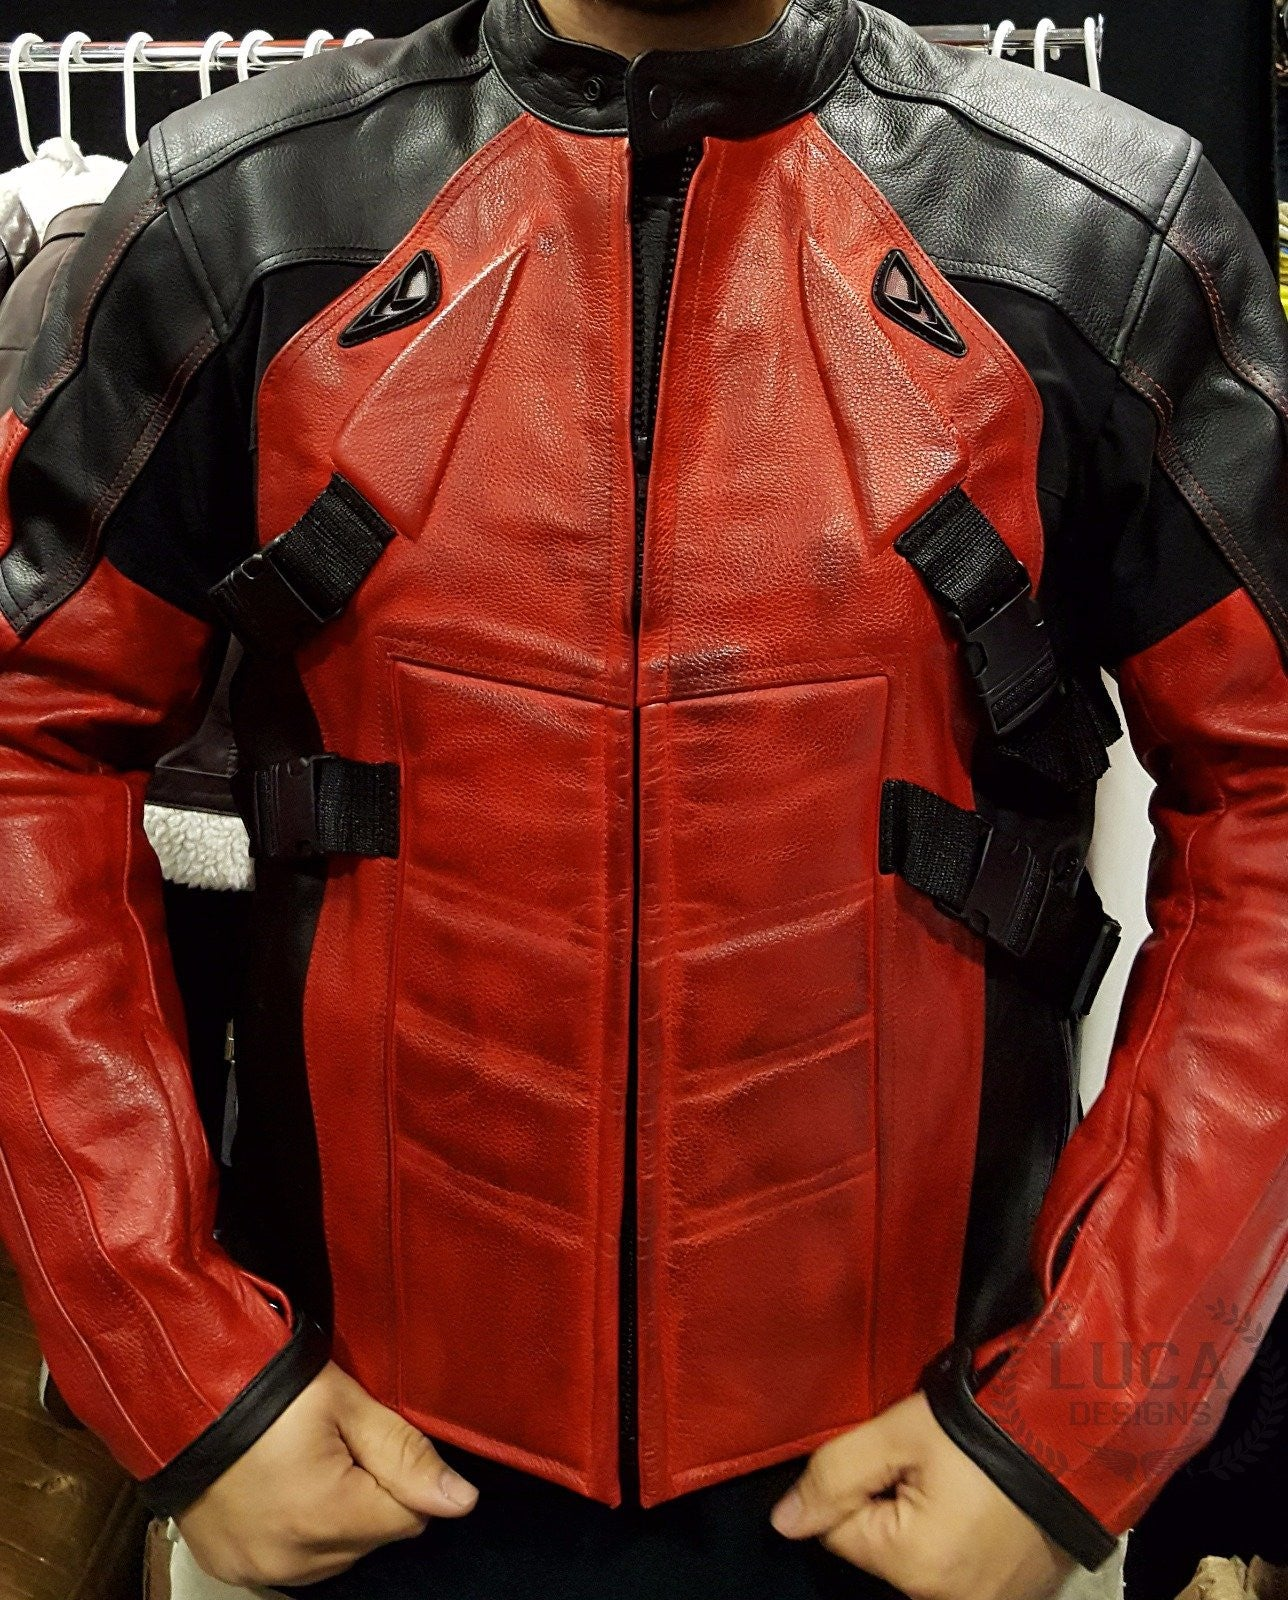 Mens Deadpool Leather Motorcycle Jacket Red and Black Armored